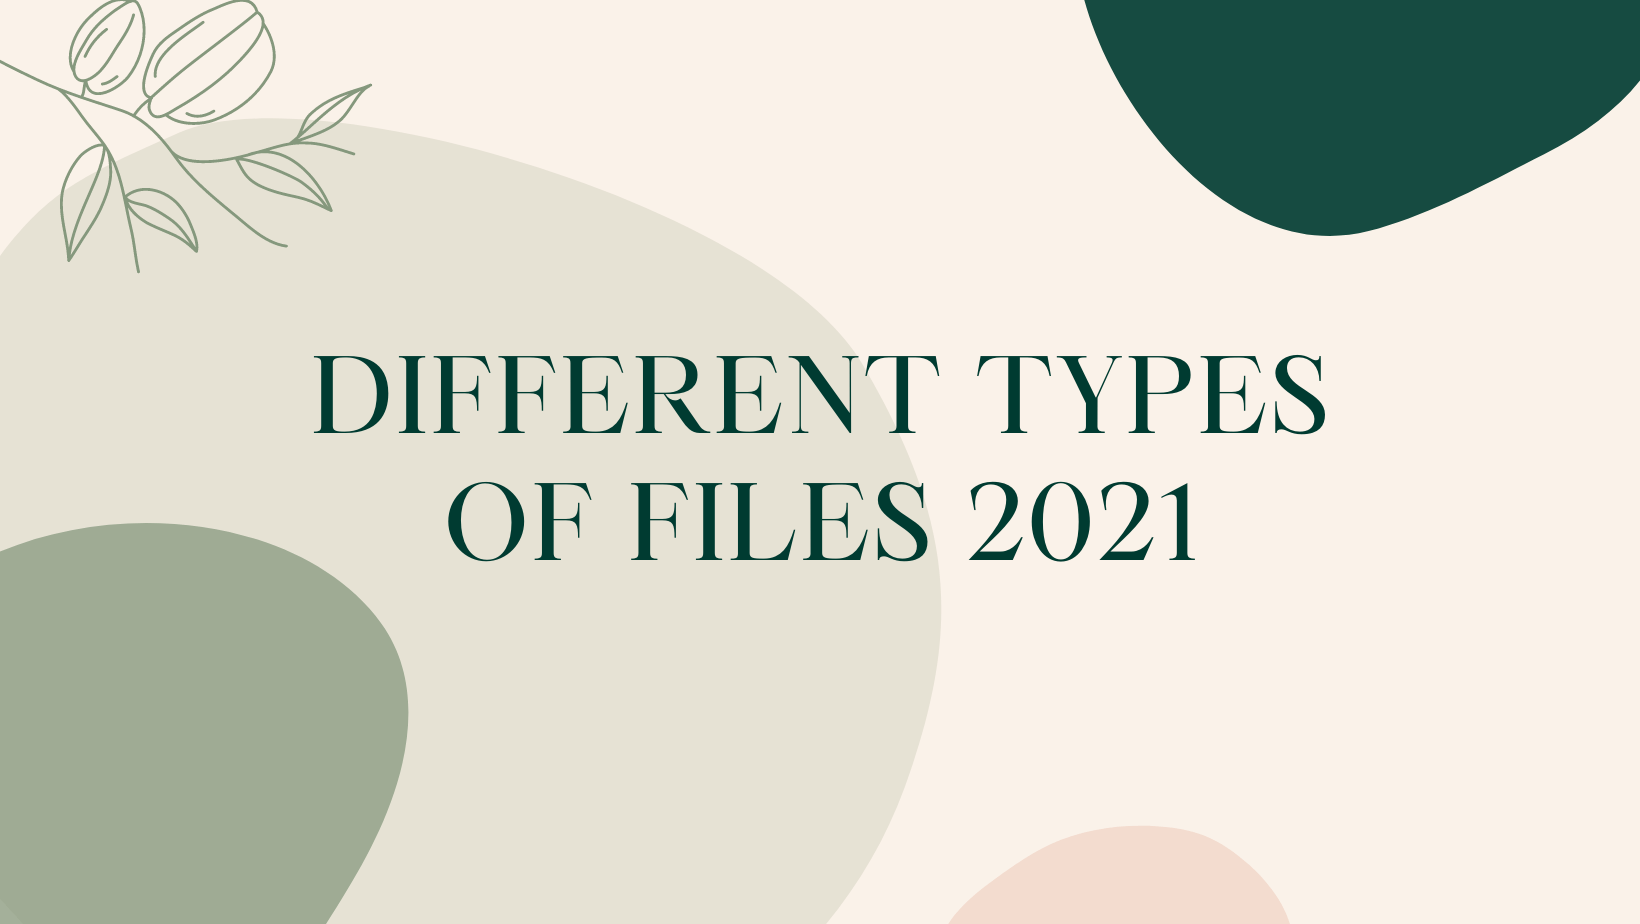 Different types of files 2021